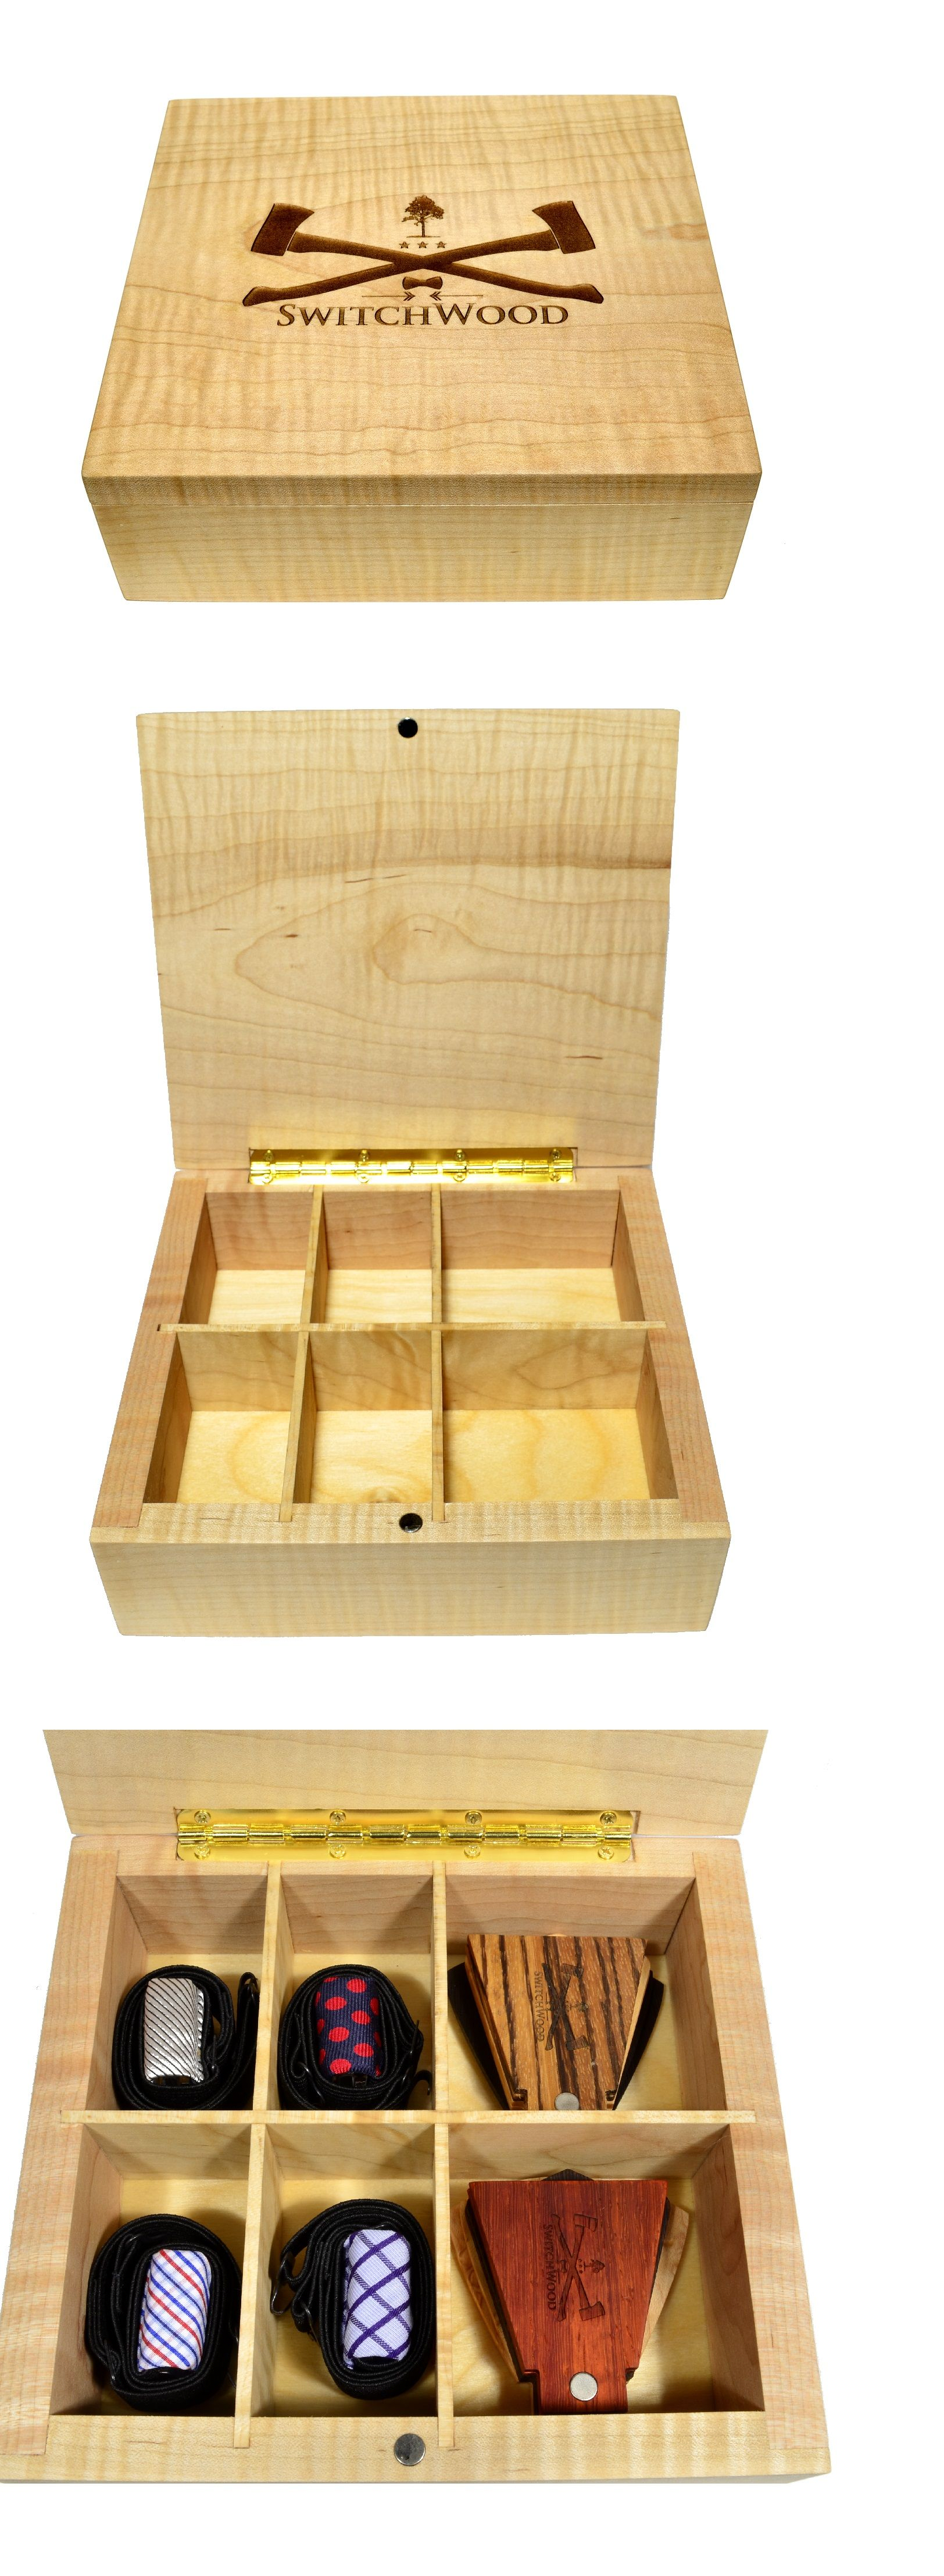 Amazing SwitchWood Has Been Prototyping A Handcrafted Luxury Tie Storage Box. Makes  For A Great Tie Holder Or Tie Organizer For Our Wooden Bow Ties And Any  Type Of ...